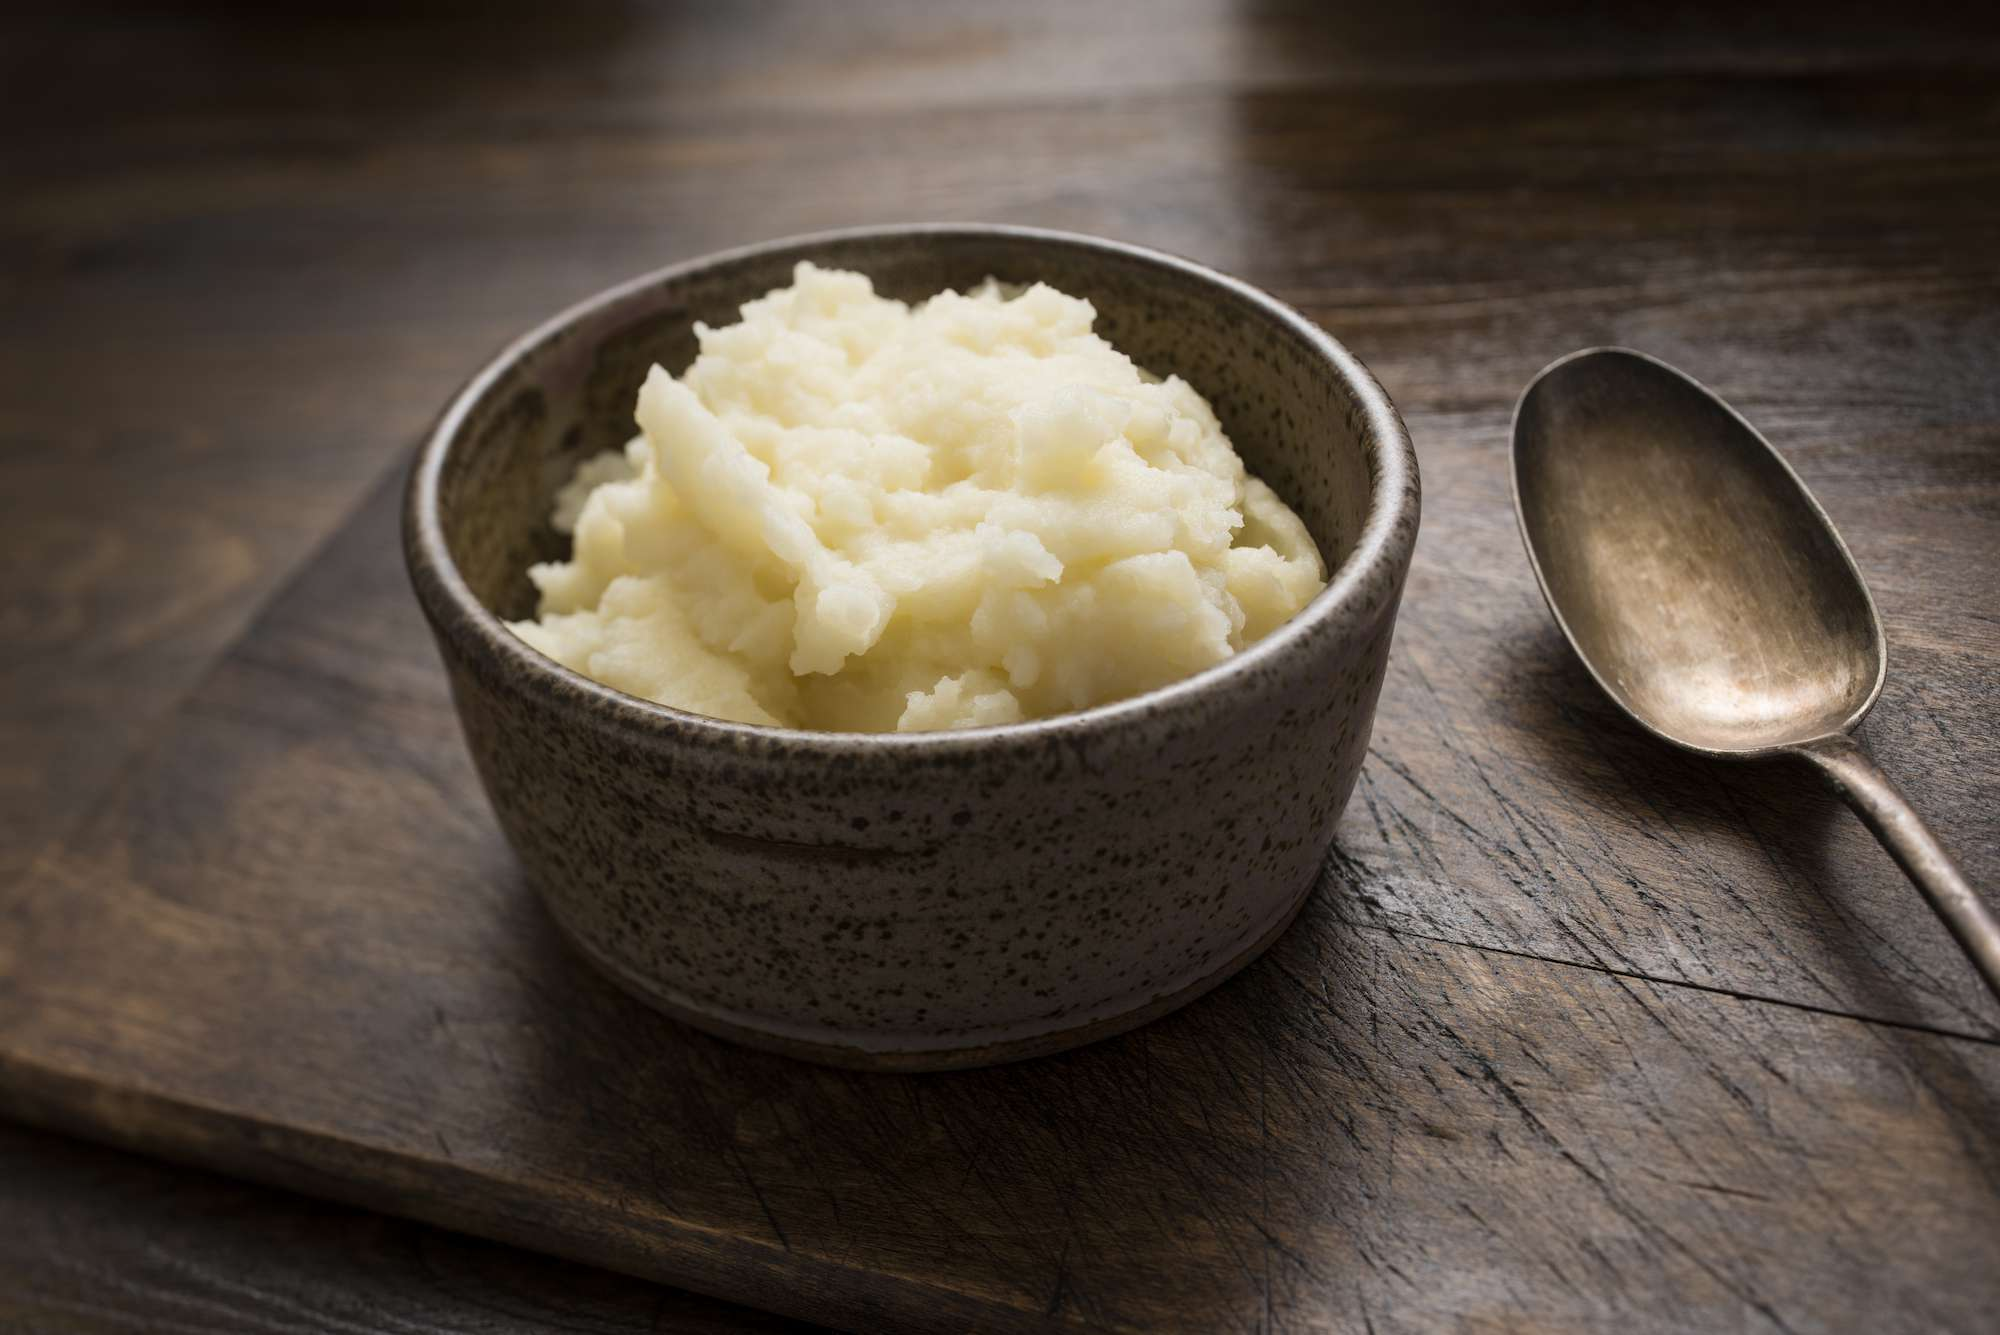 mashed-potato-2014.jpg